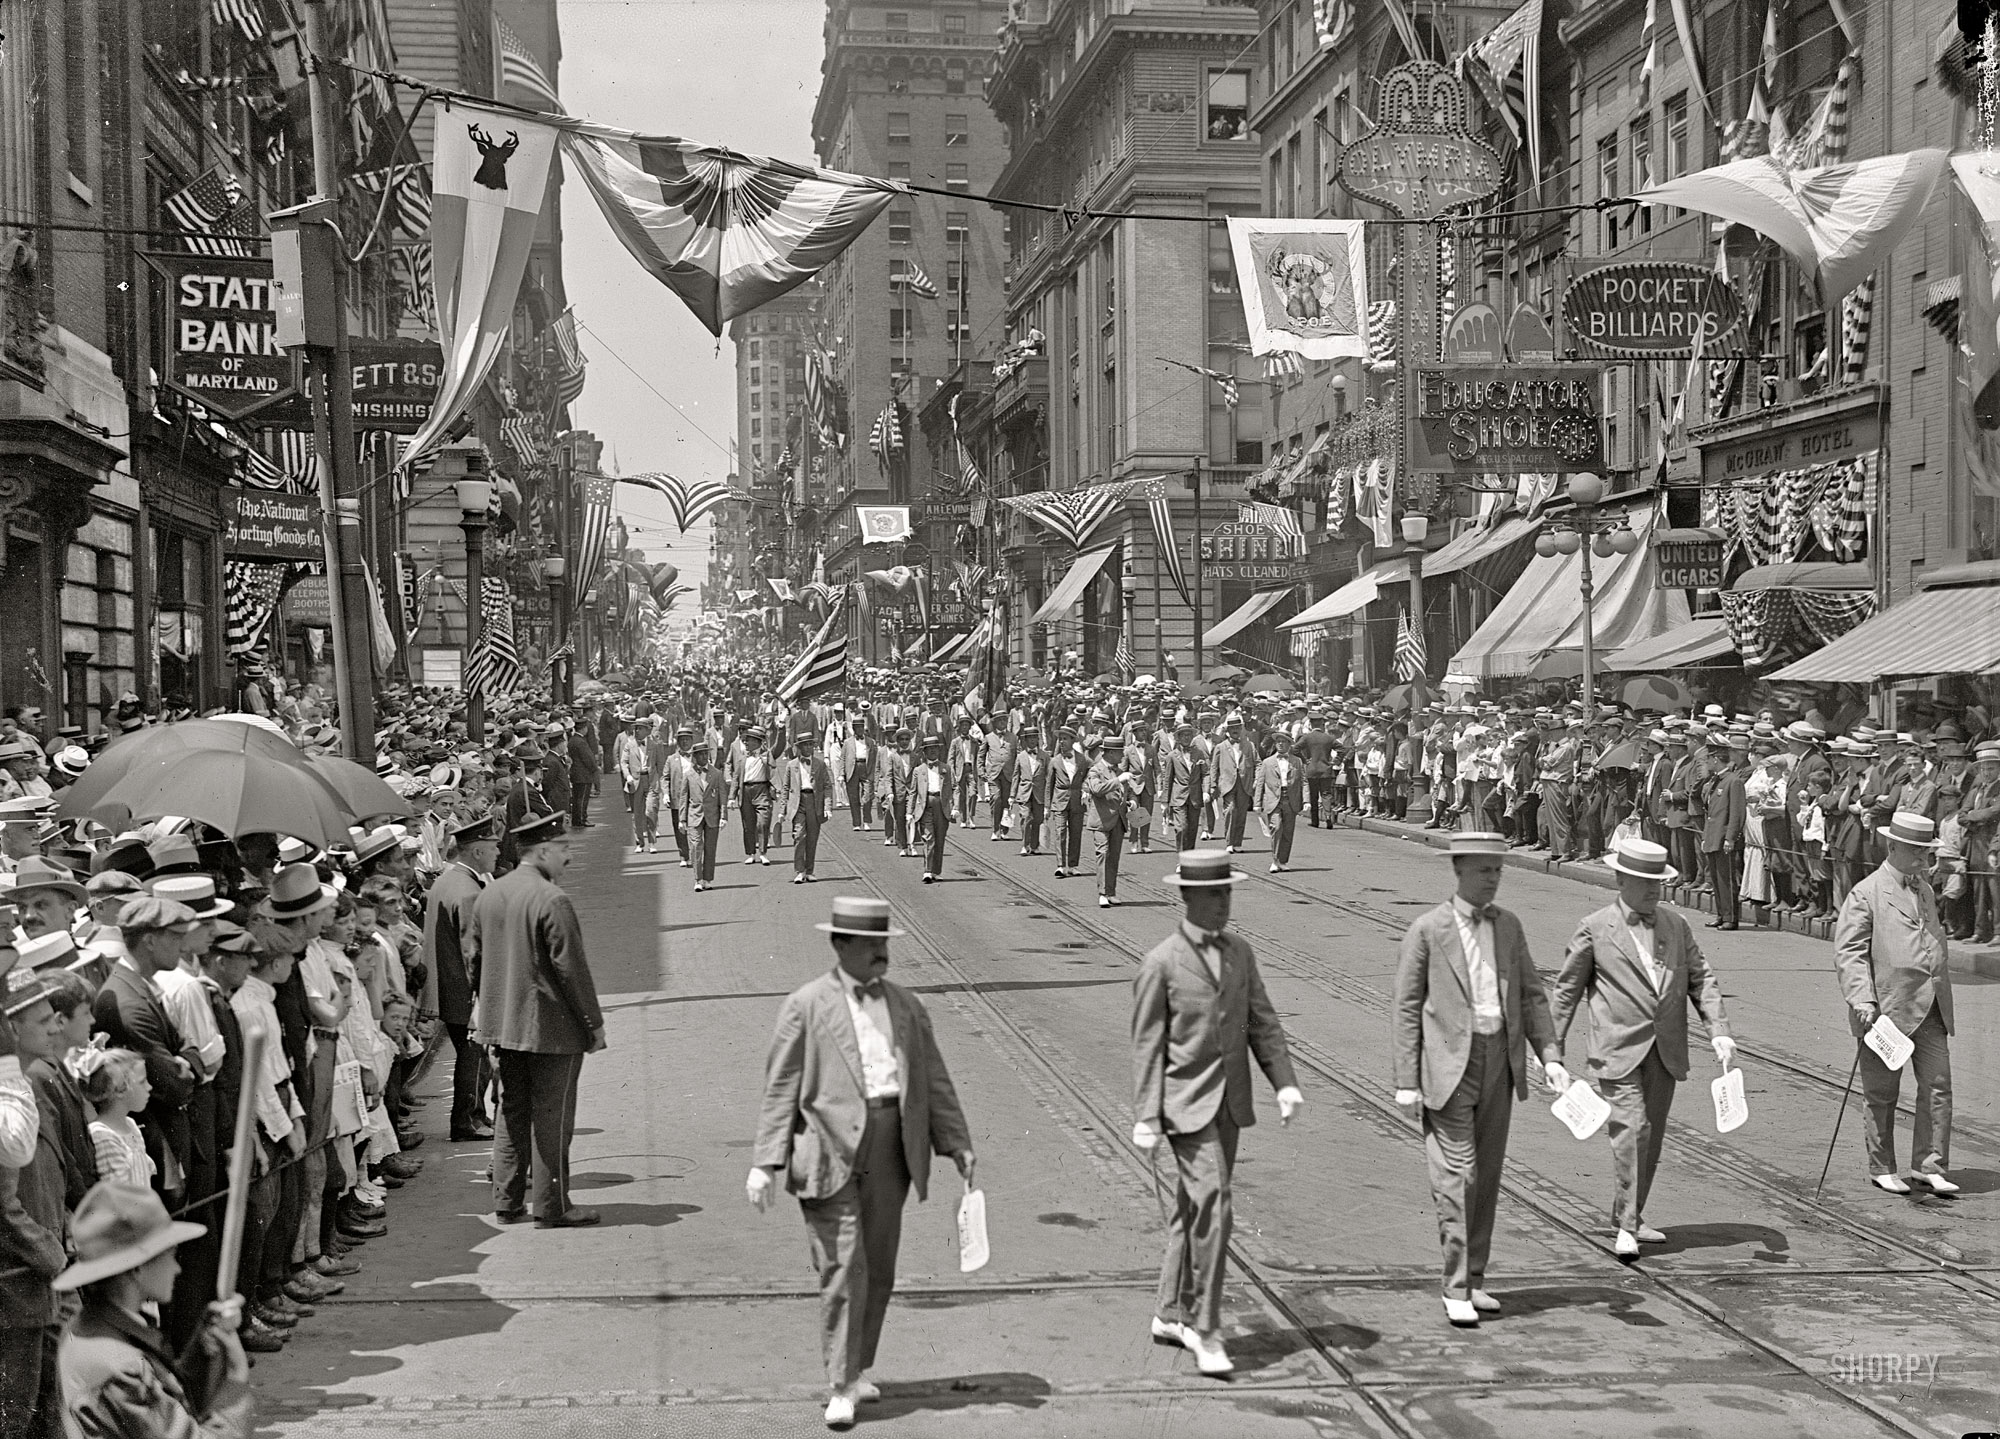 Baltimore Street Parade in 1916